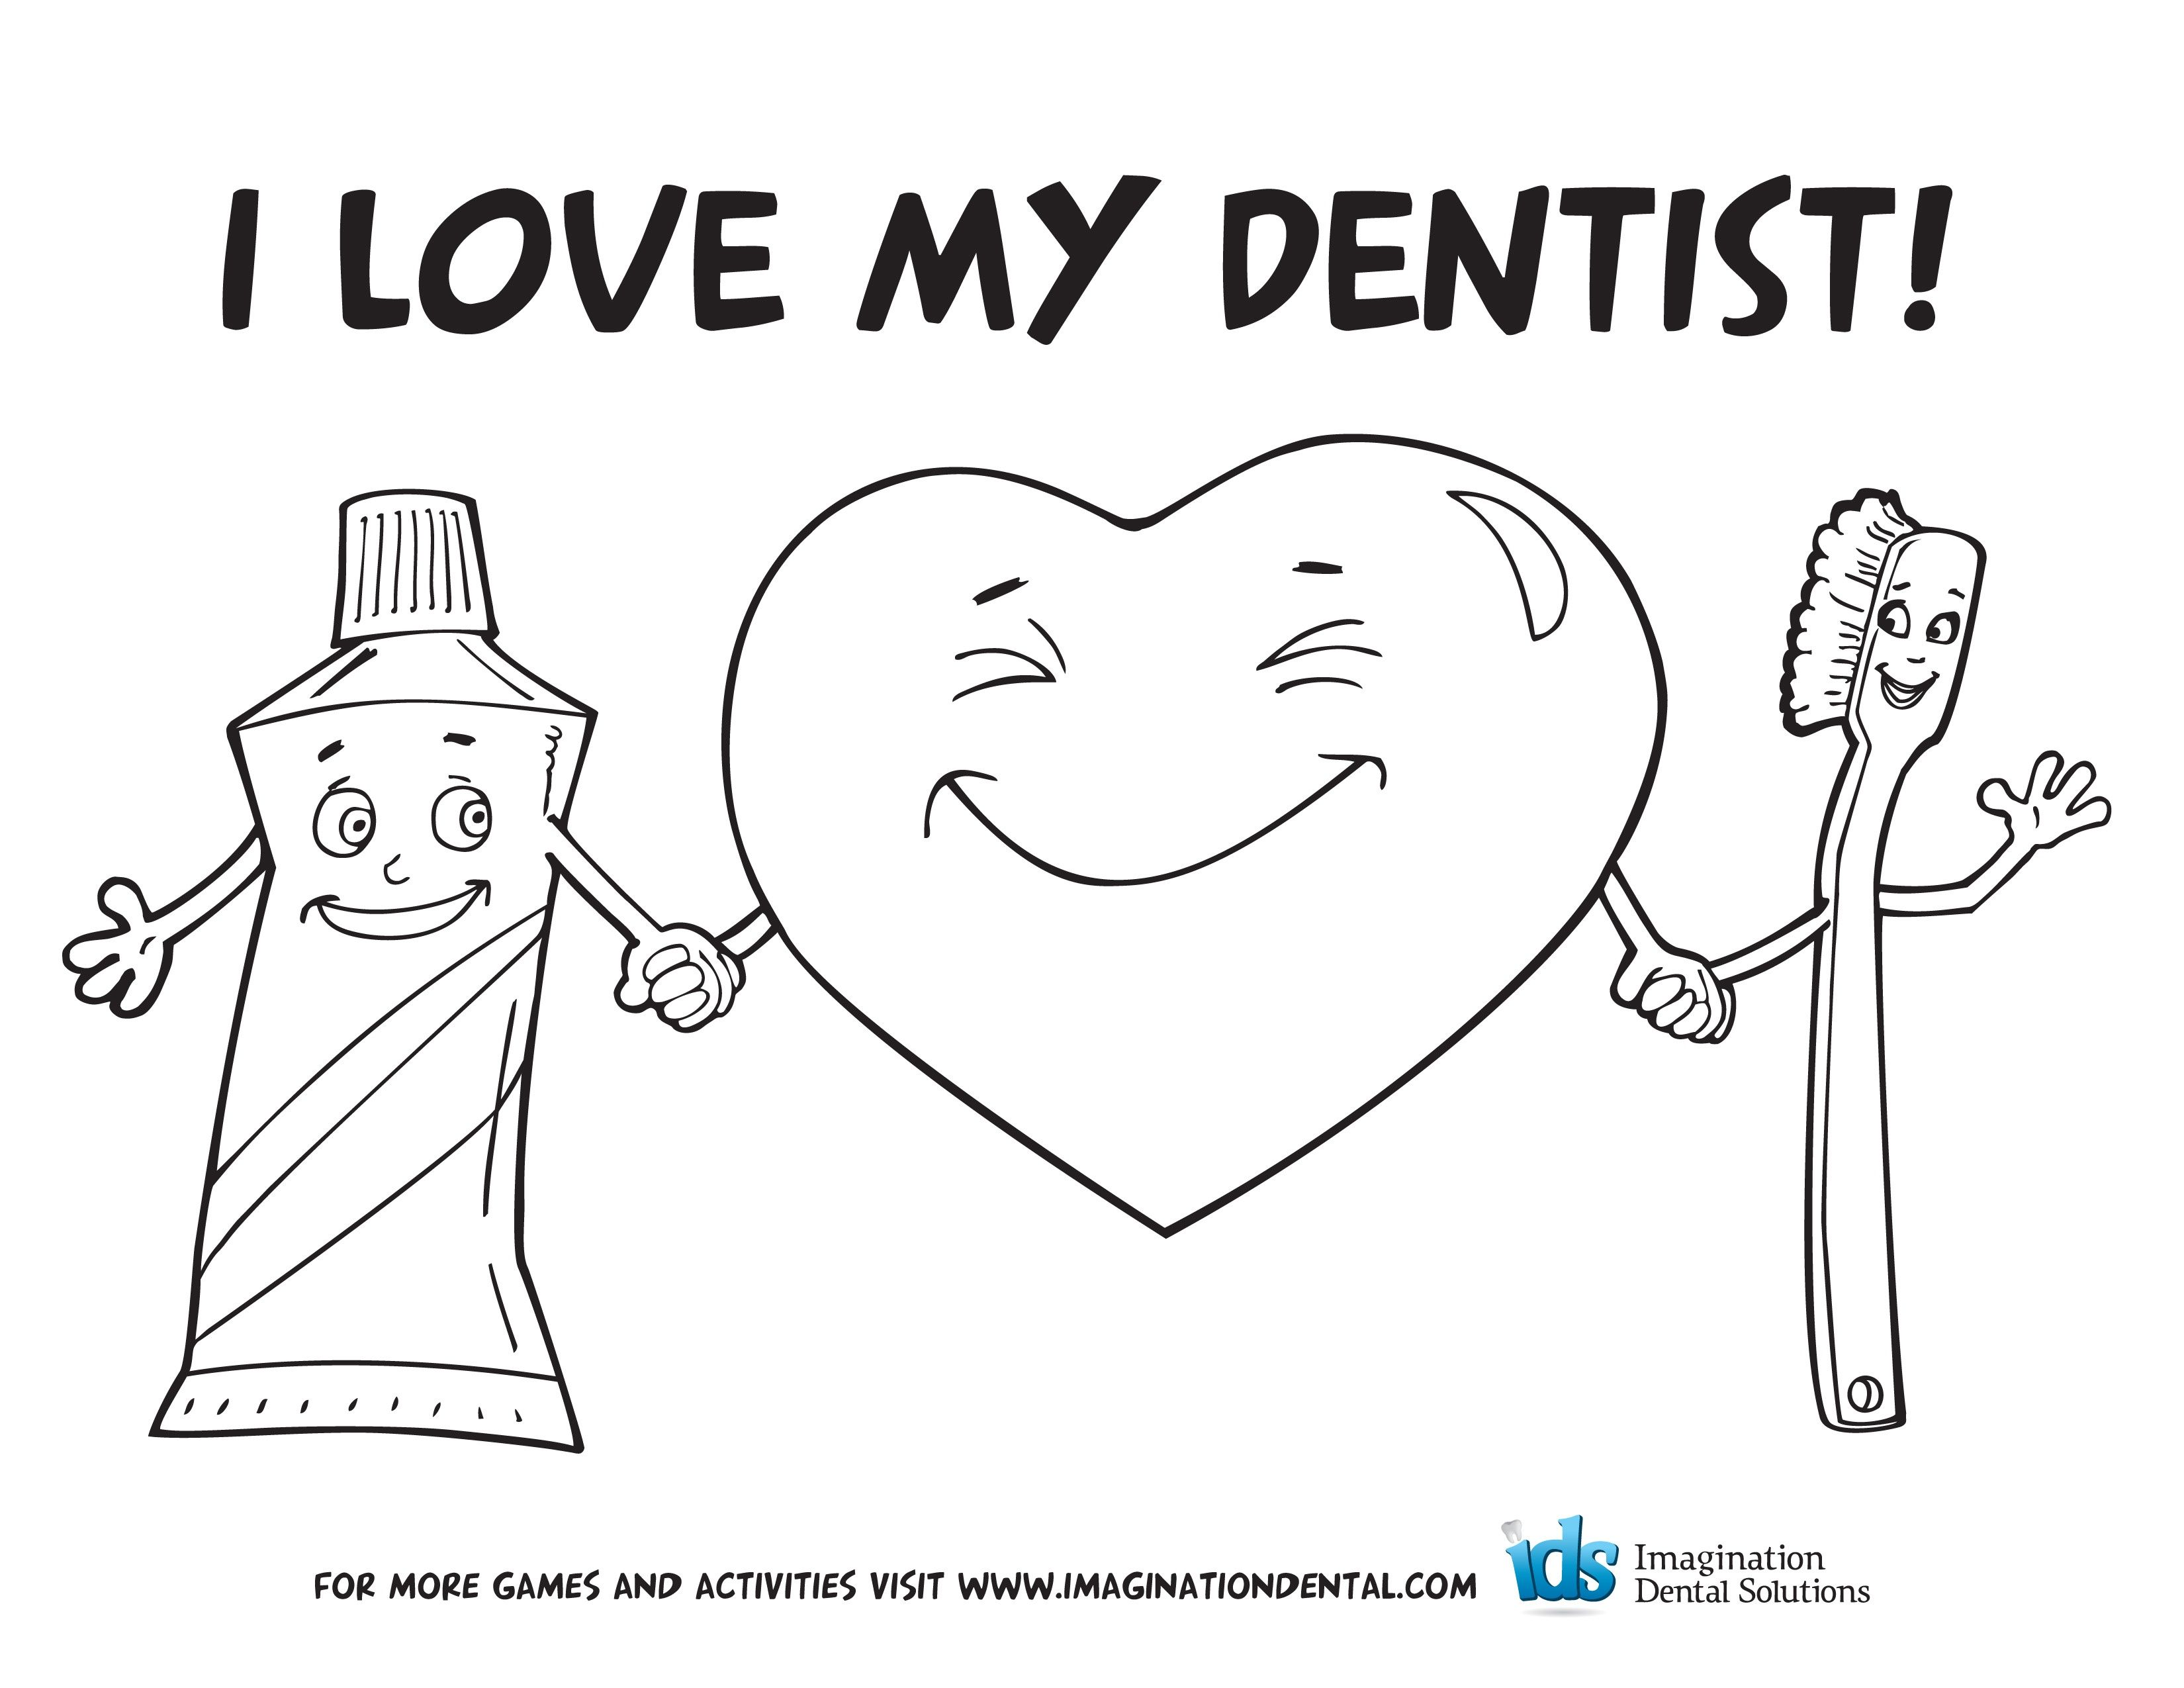 dental coloring pages - photo#34